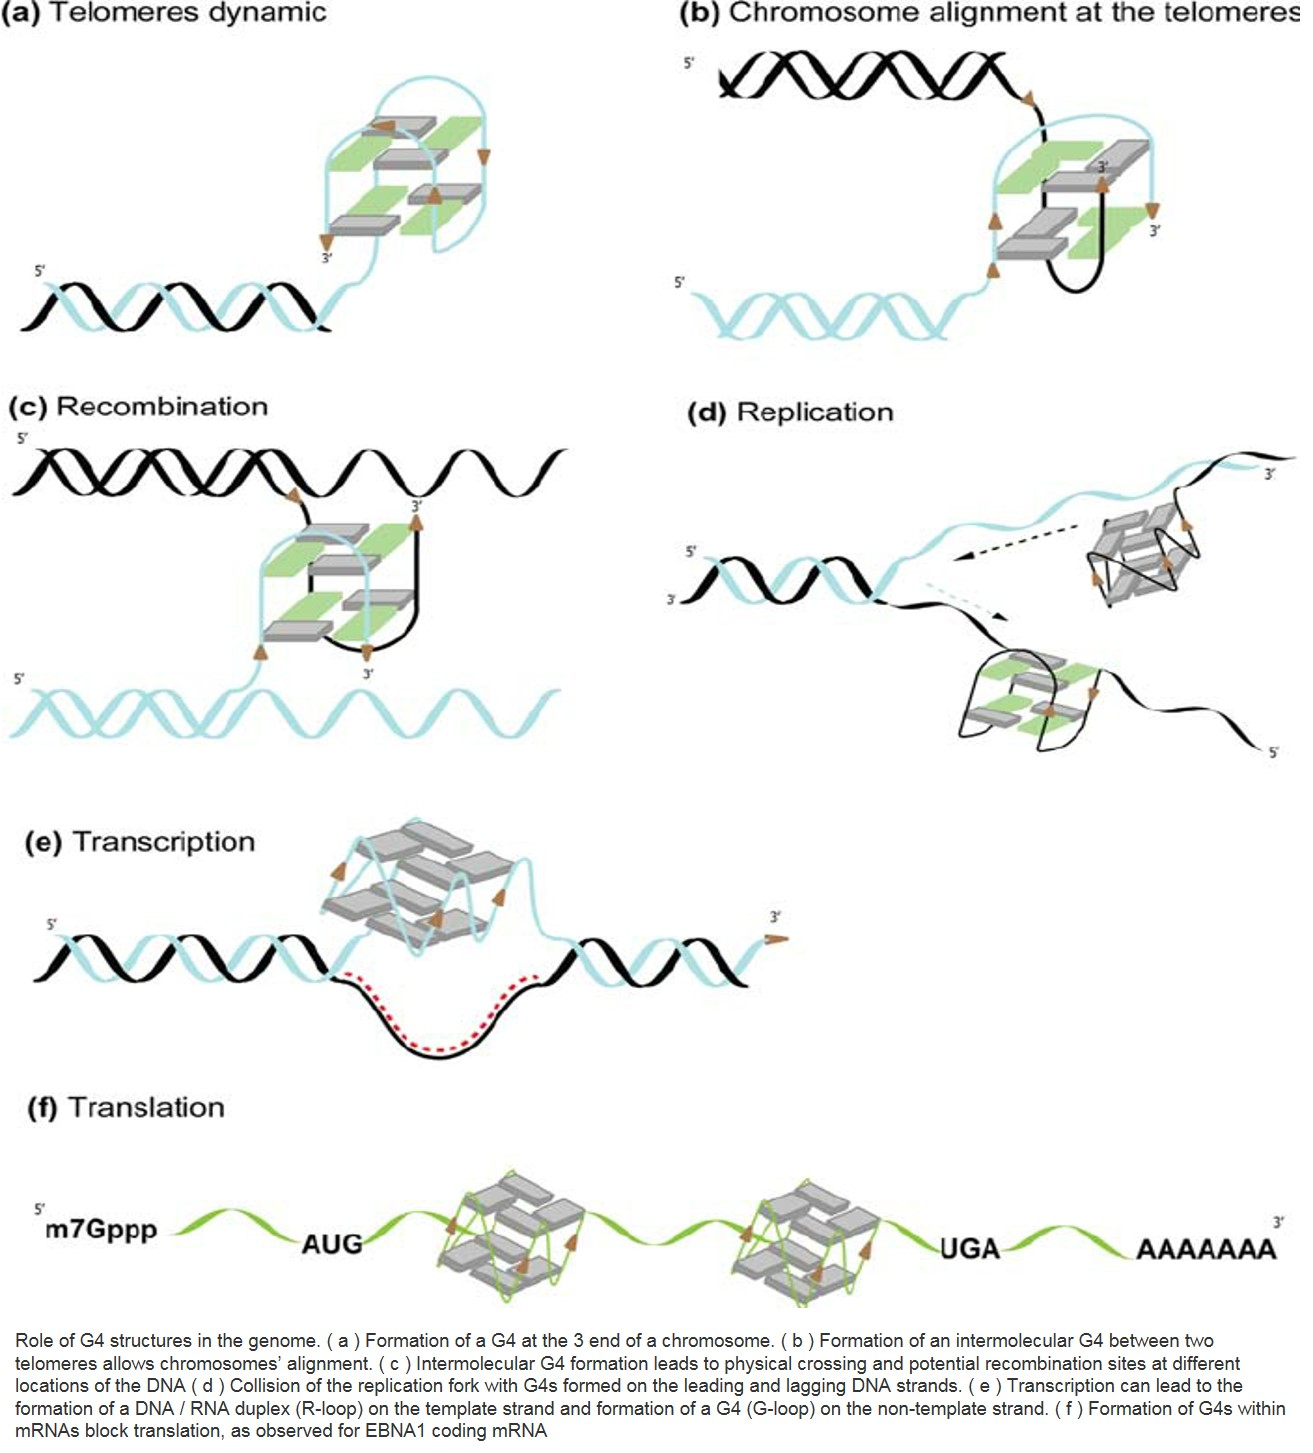 Four-stranded DNA is formed and unfolded